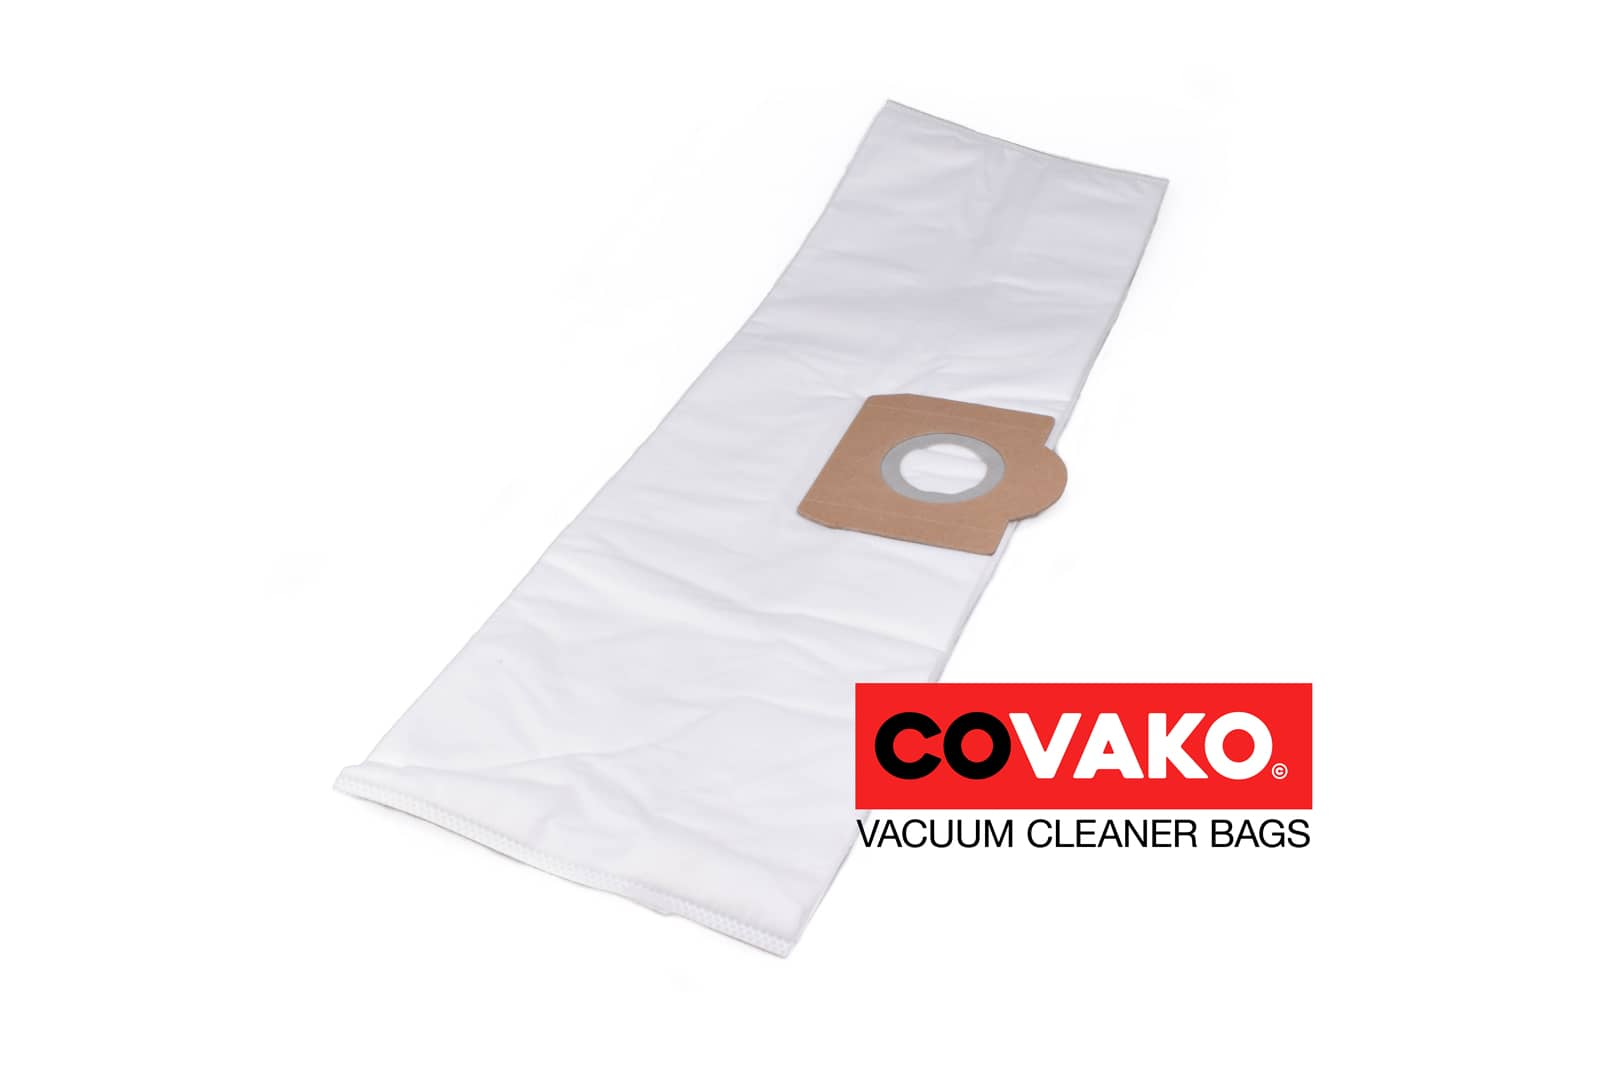 Nilco IC 215 / Synthesis - Nilco vacuum cleaner bags